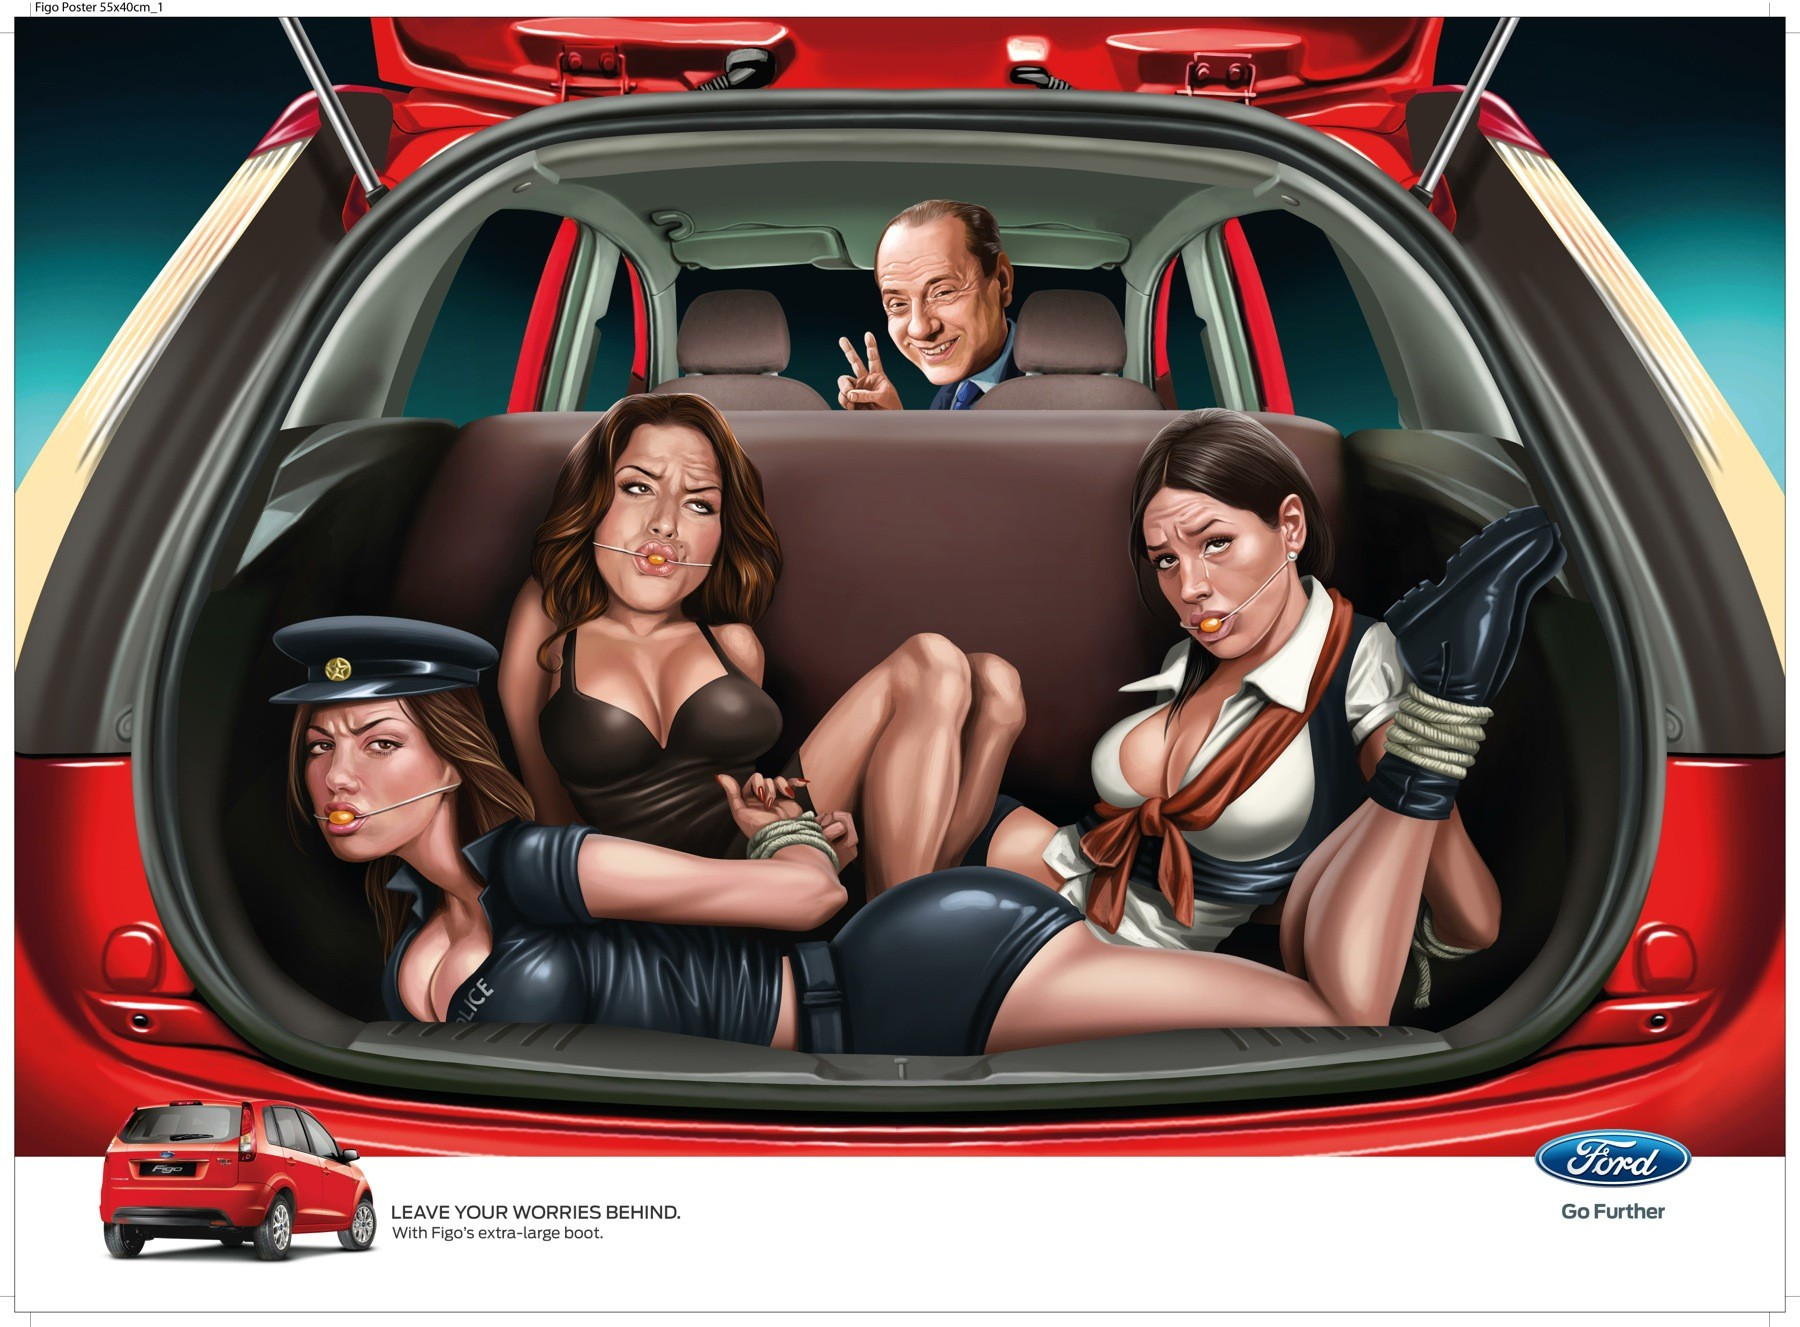 #WhatWereTheyThinking: Ad agency apologises for disturbing car advert showing gagged & bound women (LOOK)